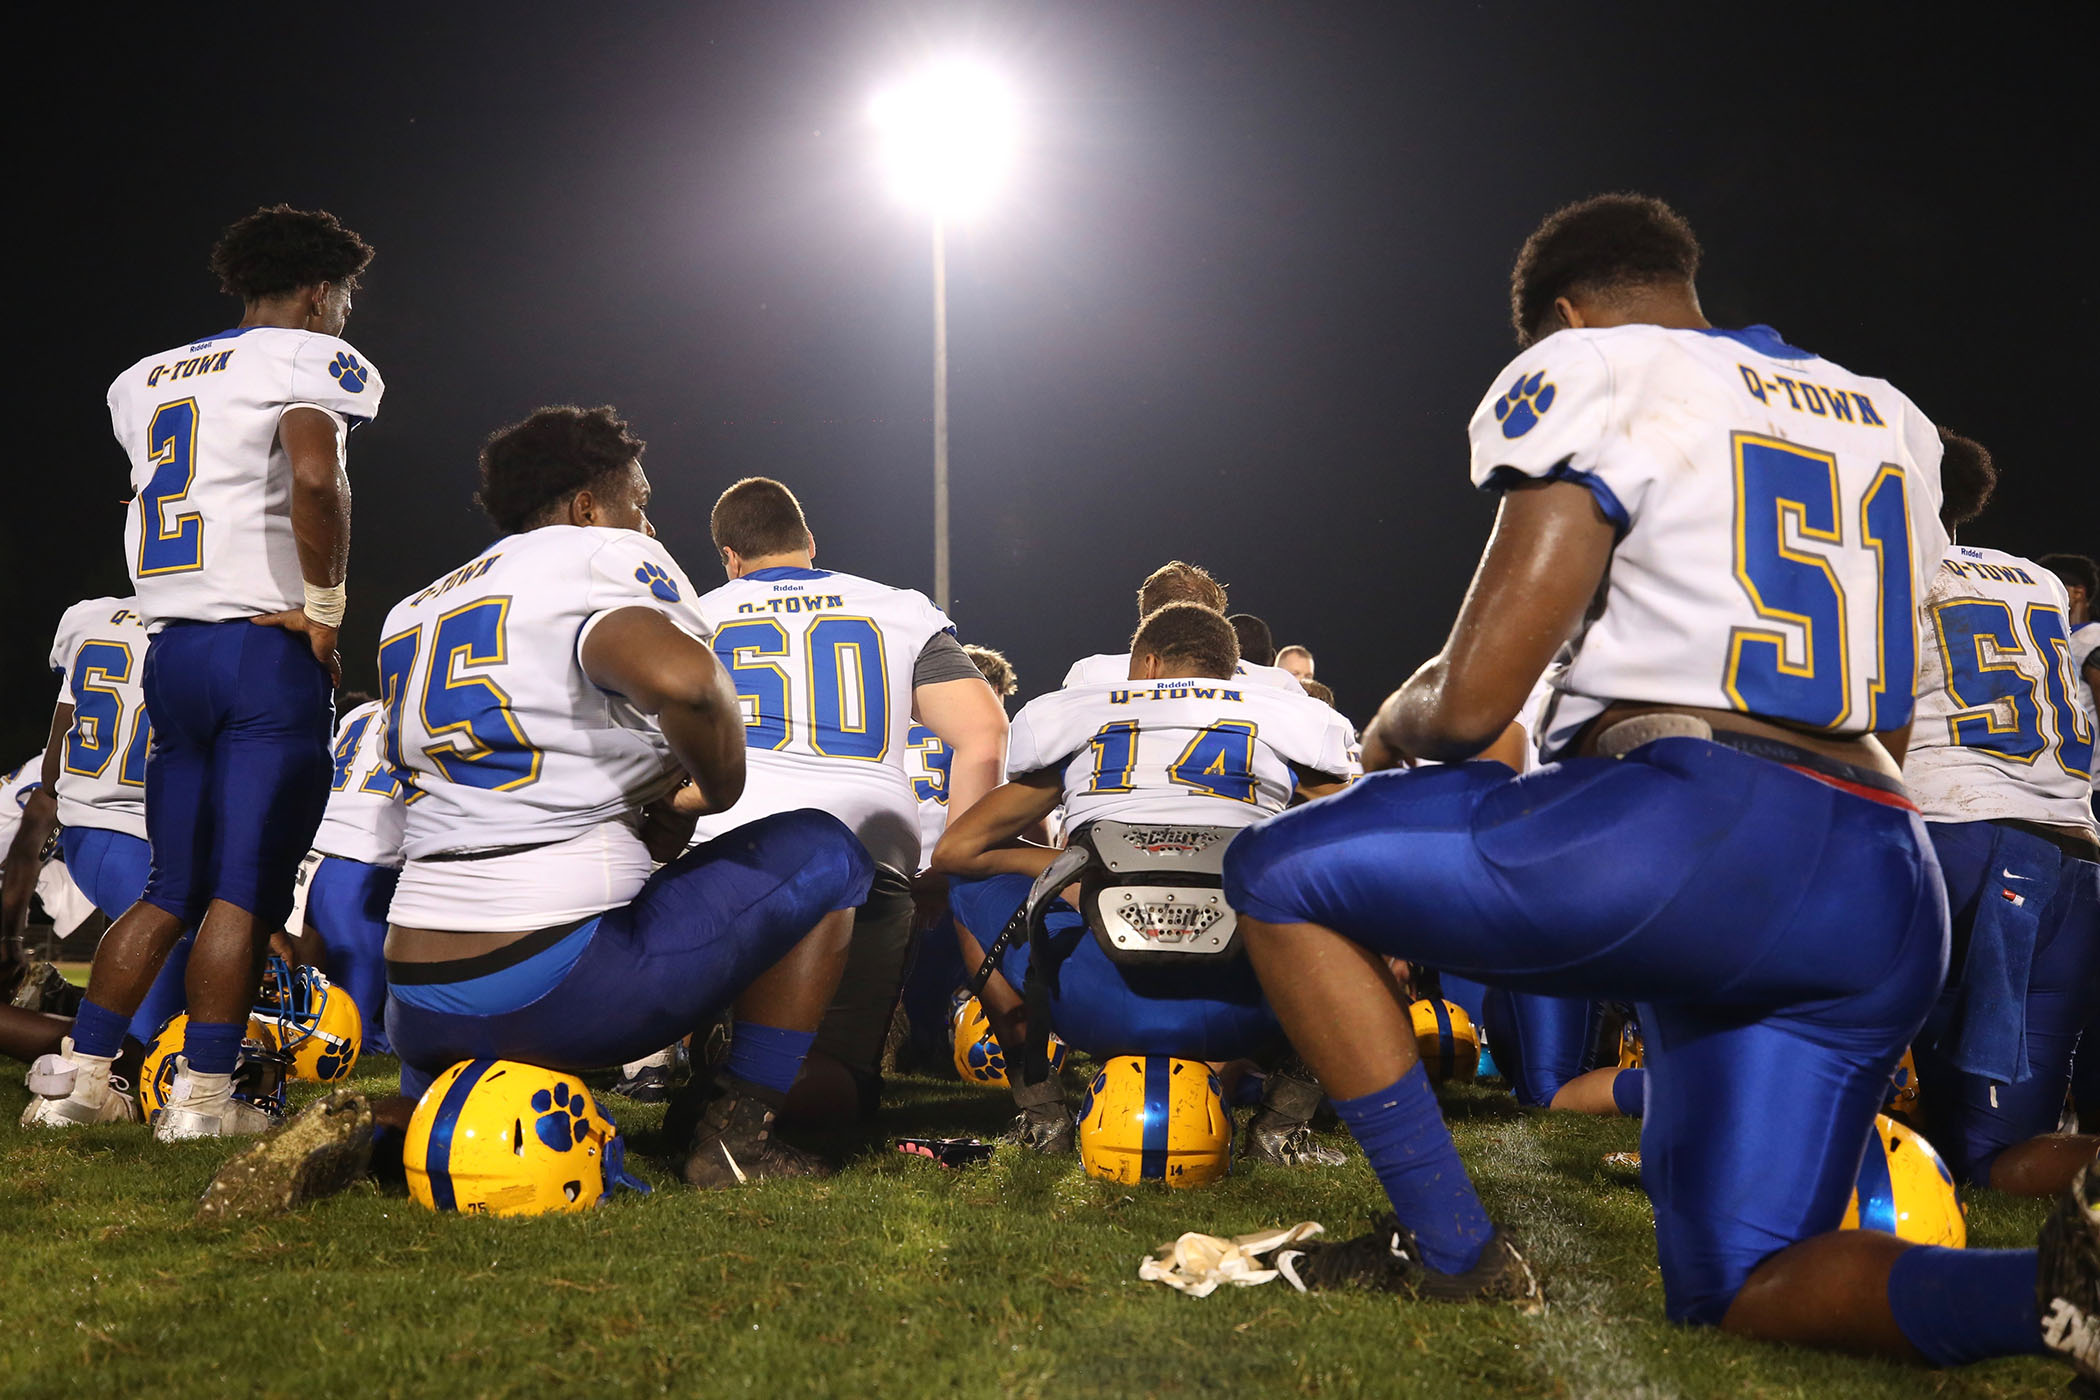 The Panther Football team listens to their coach after the game.